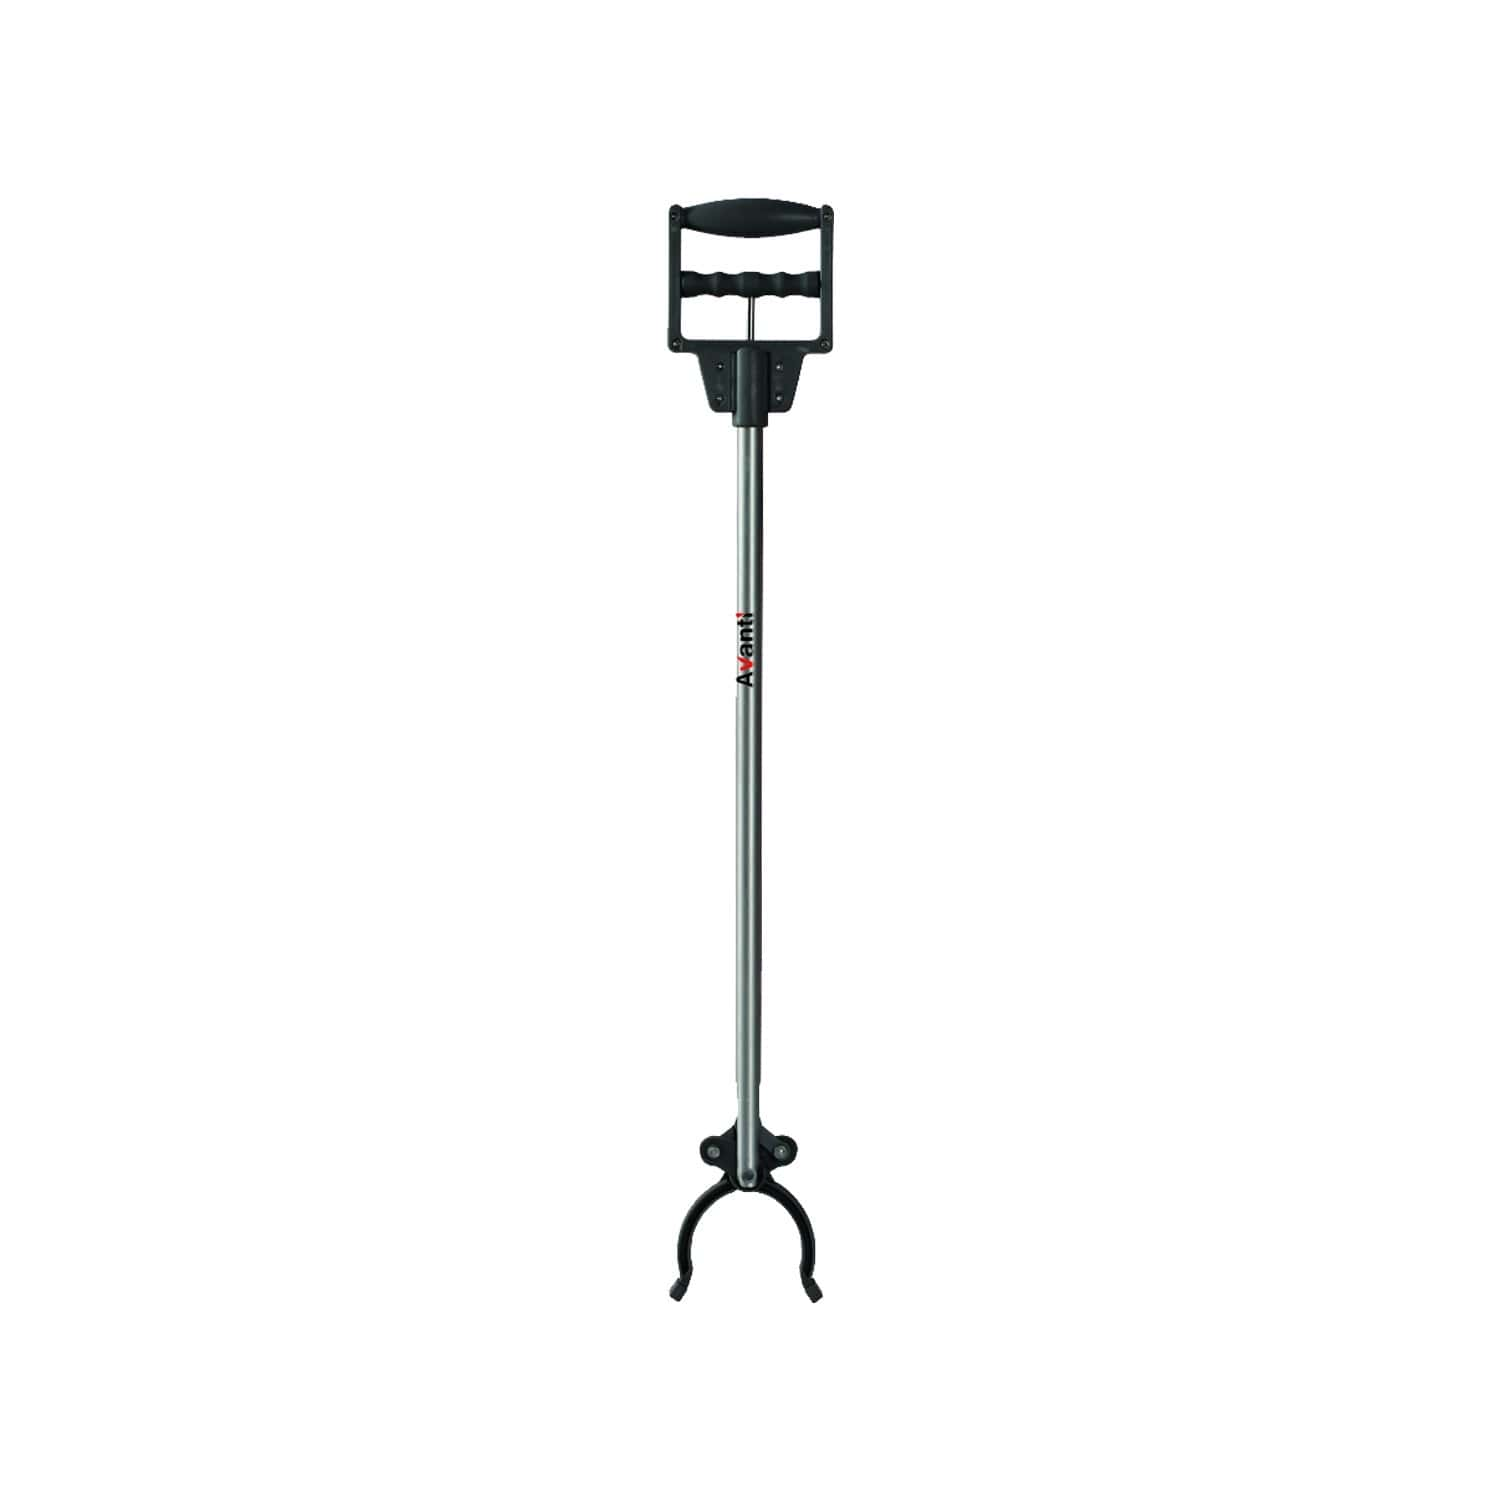 Vissco Avanti Reacher For Handicapped (grabber)